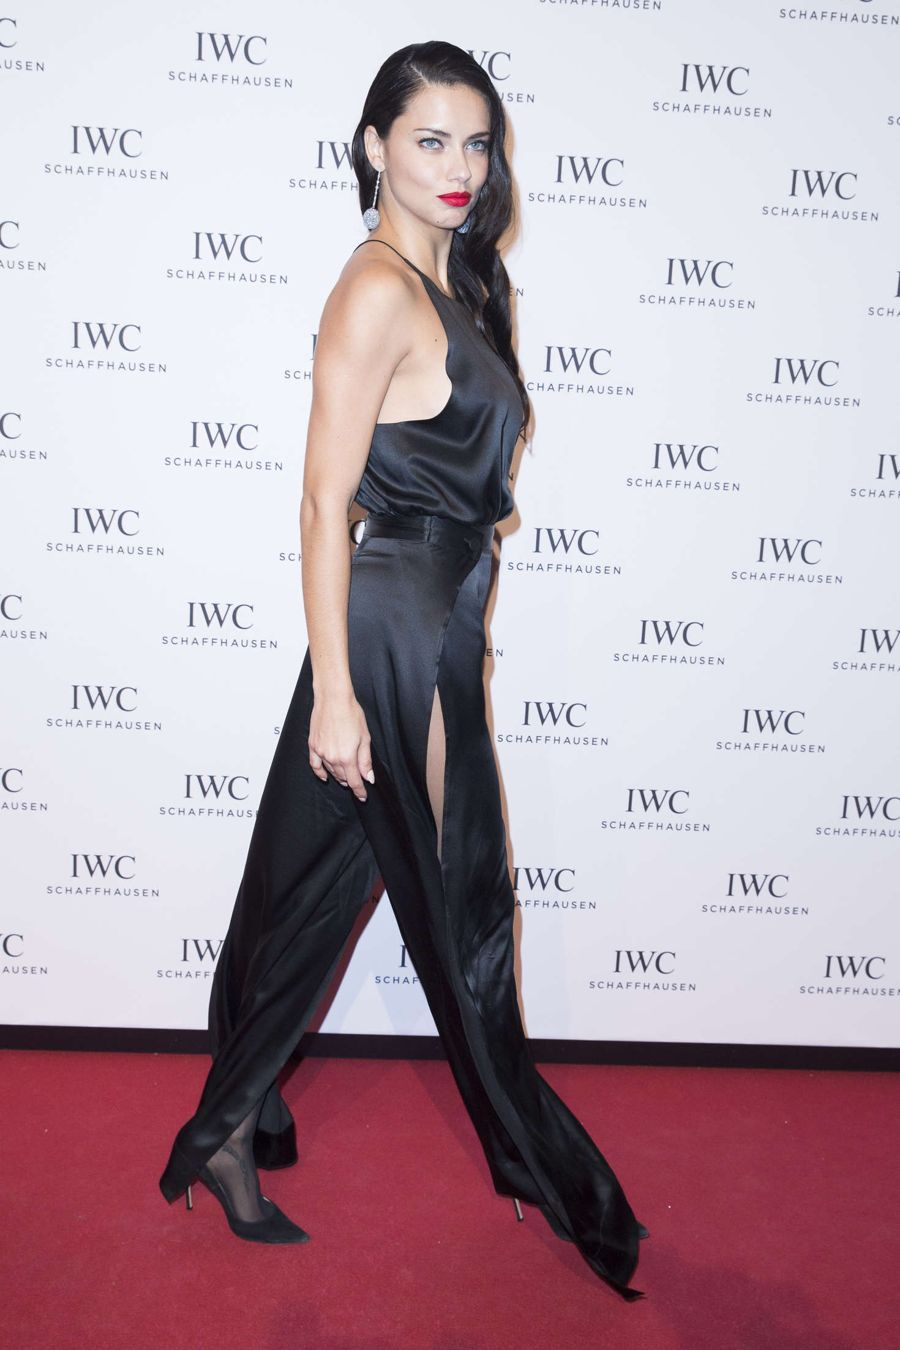 Adriana Lima - Gala Dinner Photocall as Part of SIHH